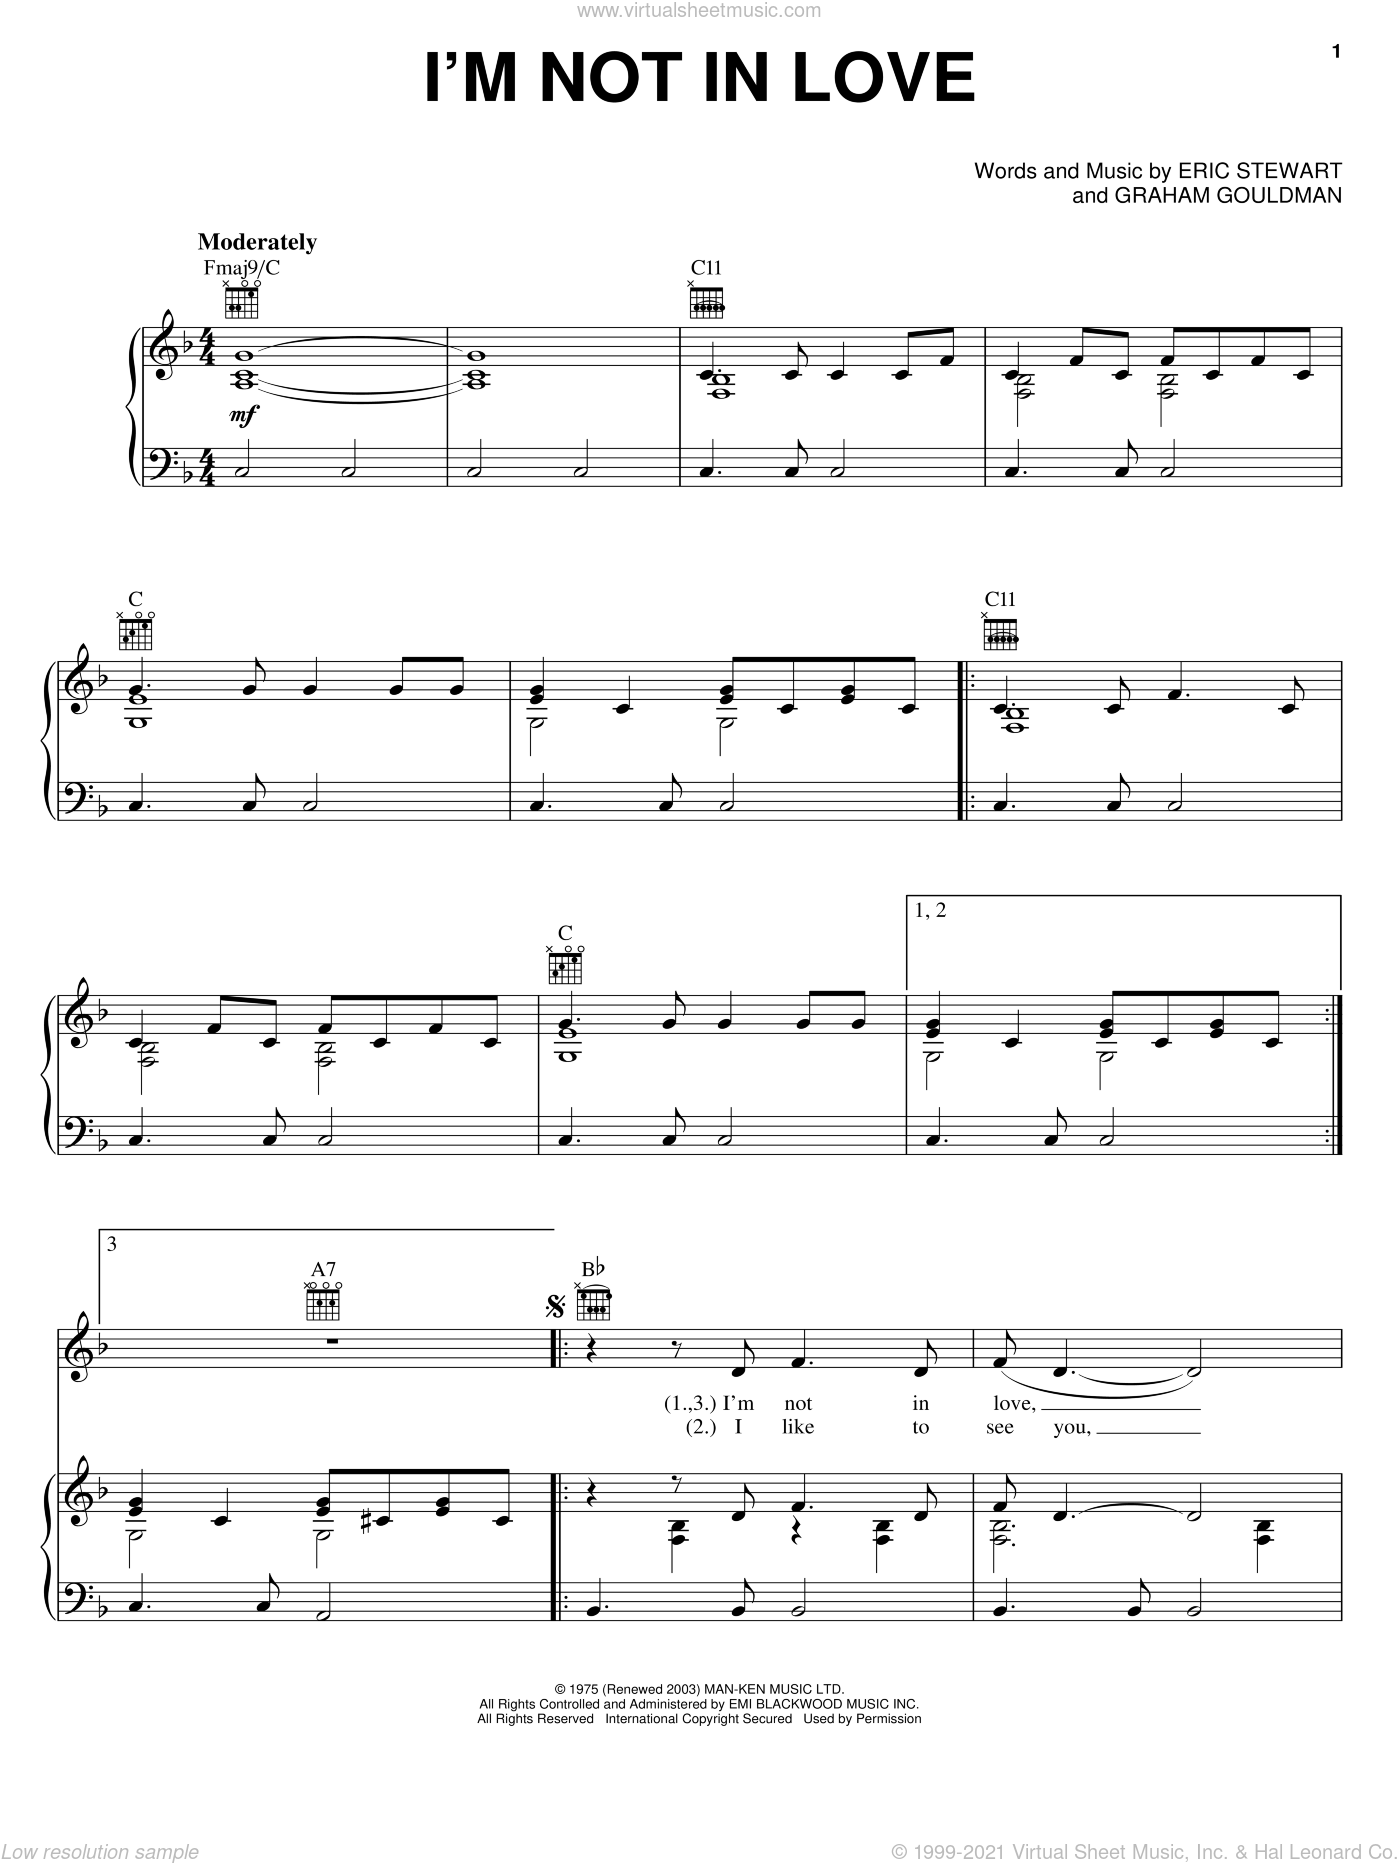 I'm Not In Love sheet music for voice, piano or guitar by Graham Gouldman